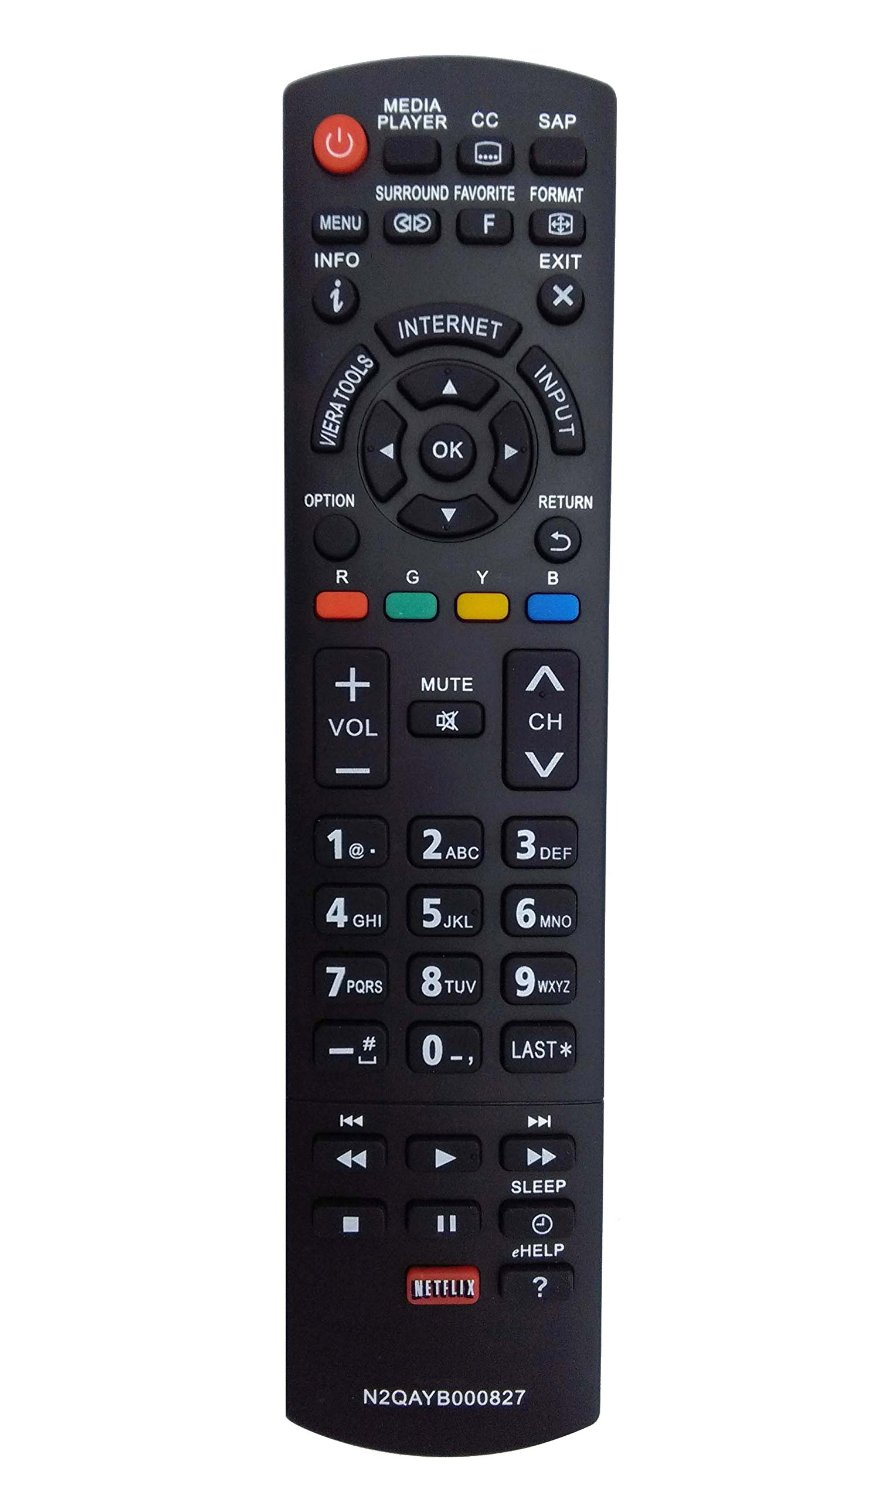 Vinabty New Replaced Remote N2QAYB000827 fit for Panasonic Plasma TVs TC-50PS64 TC-65PS64 TC-P42S60 TC-P50S60 TC-P55S60 TC-P60S60 TC-P65S60